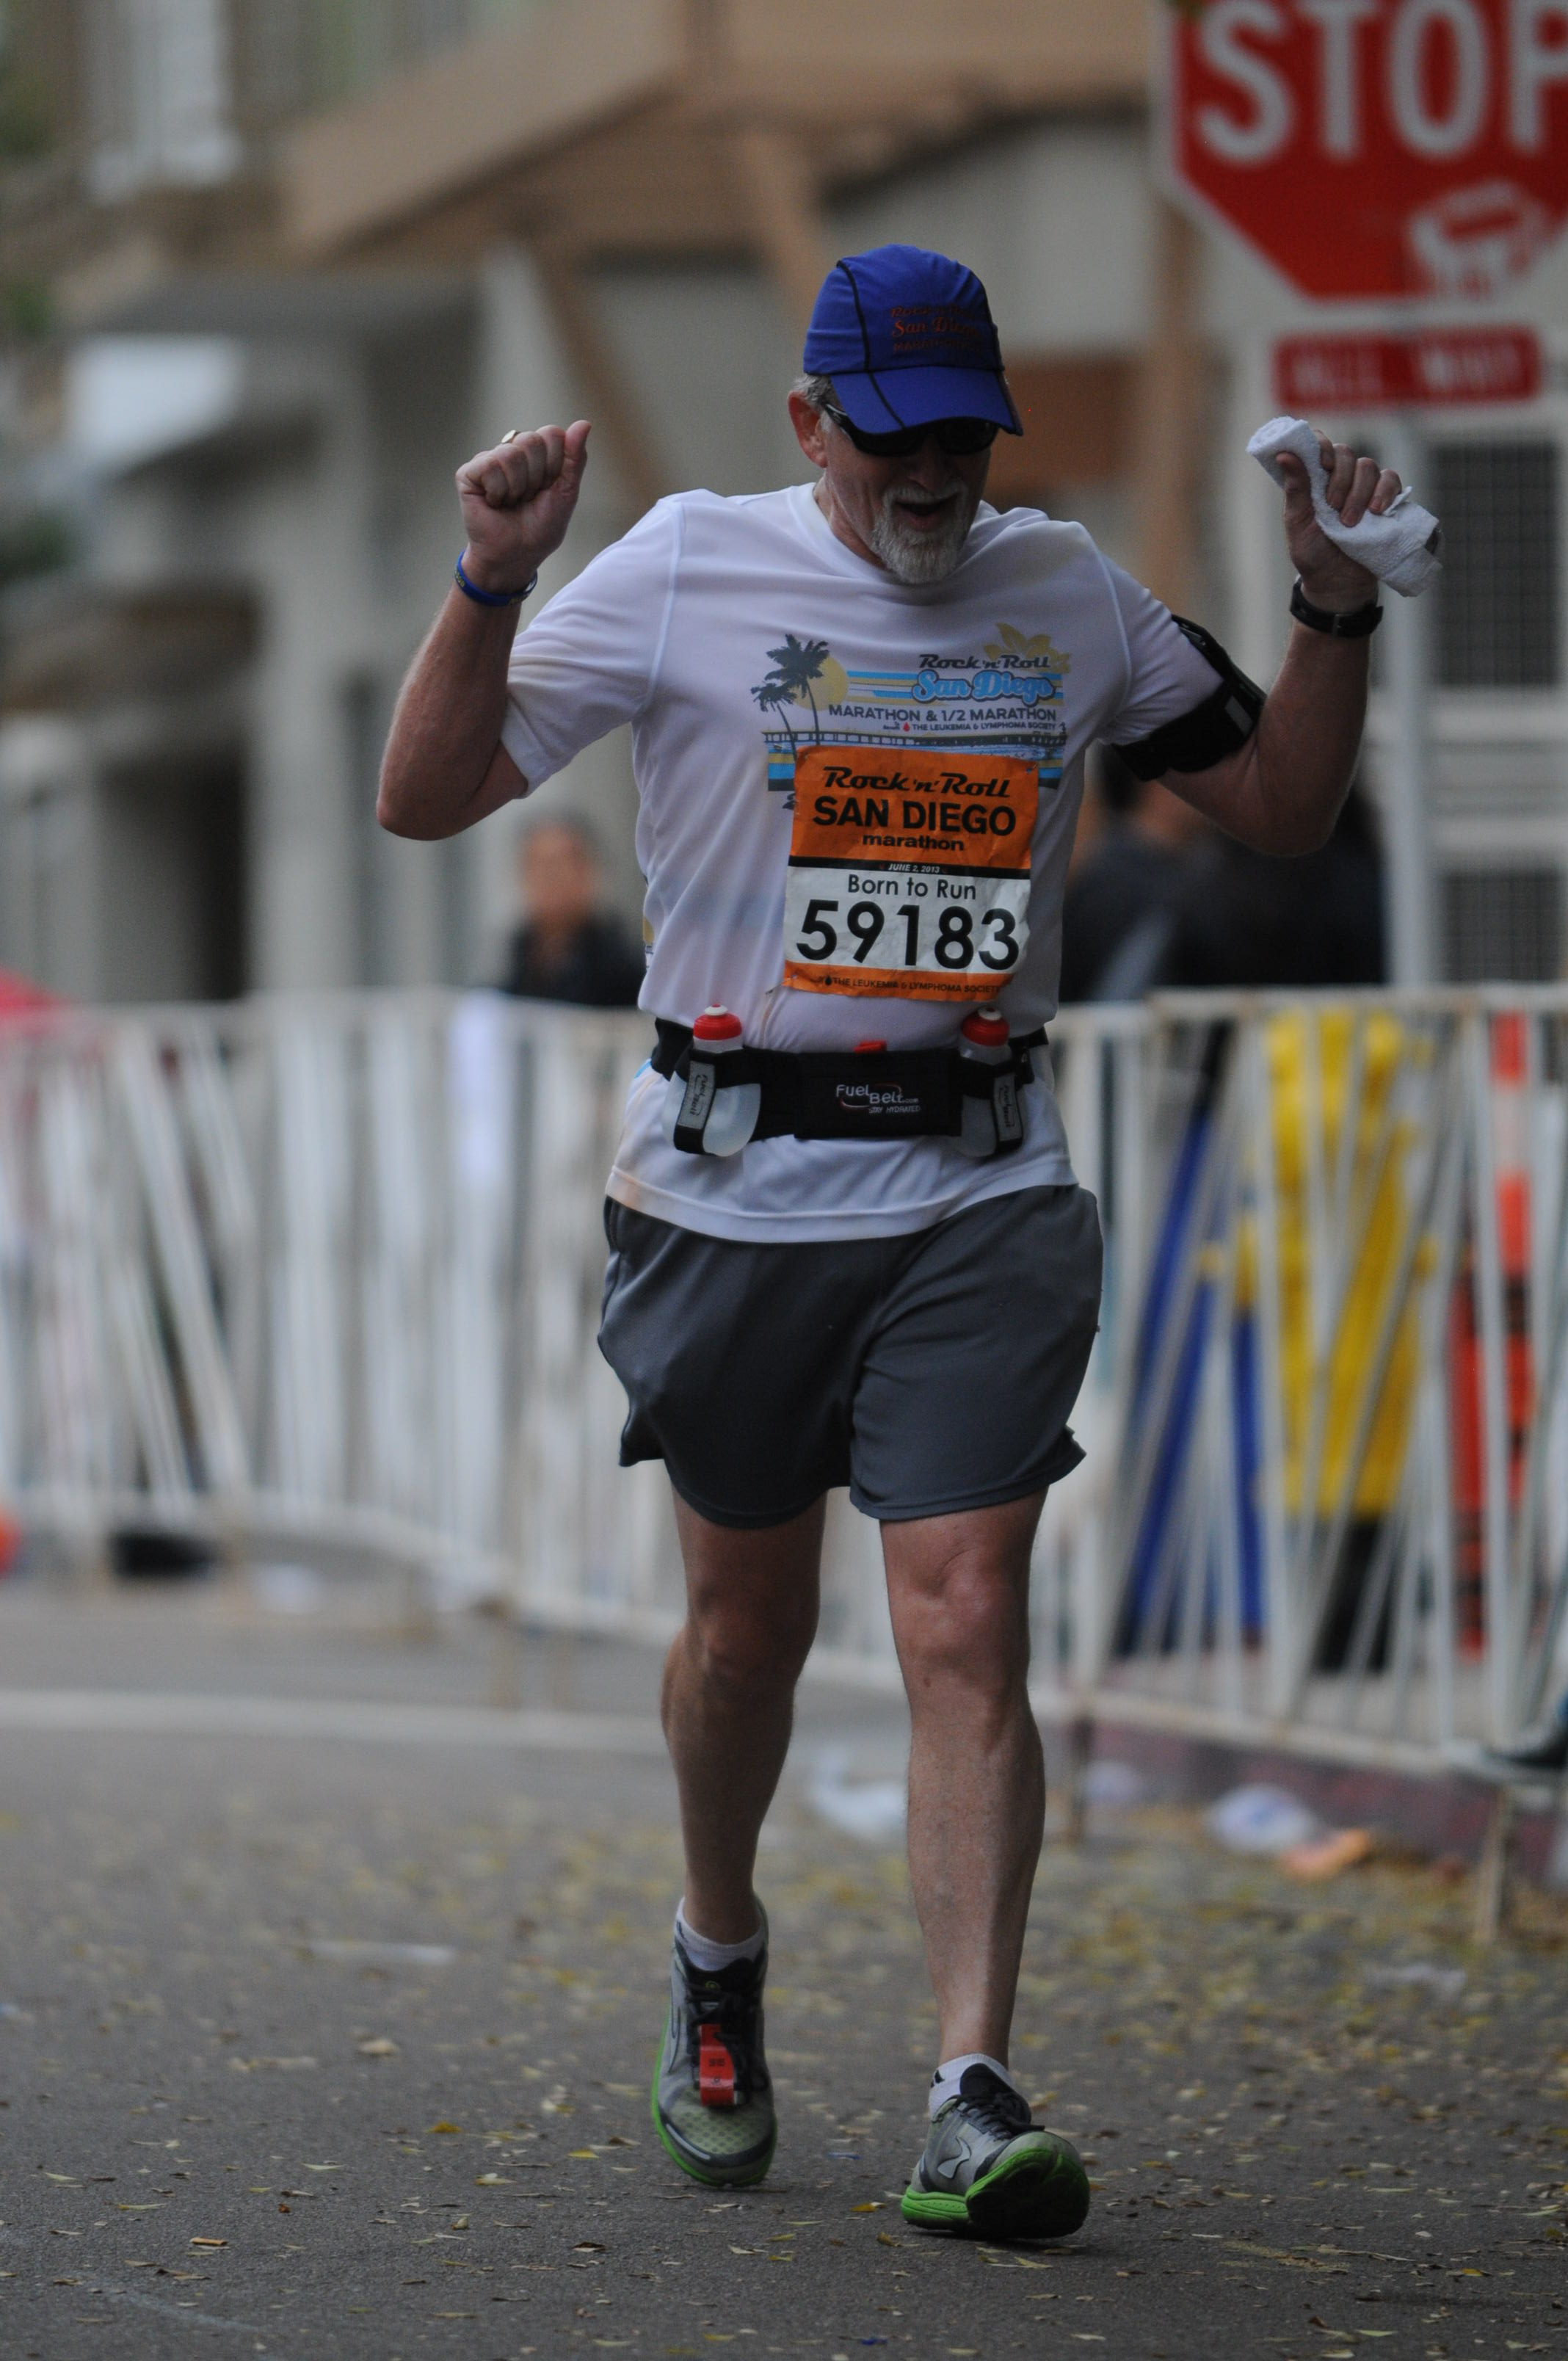 """Jogging"" across the finish line at 2013 San Diego Rock and Roll Marathon."